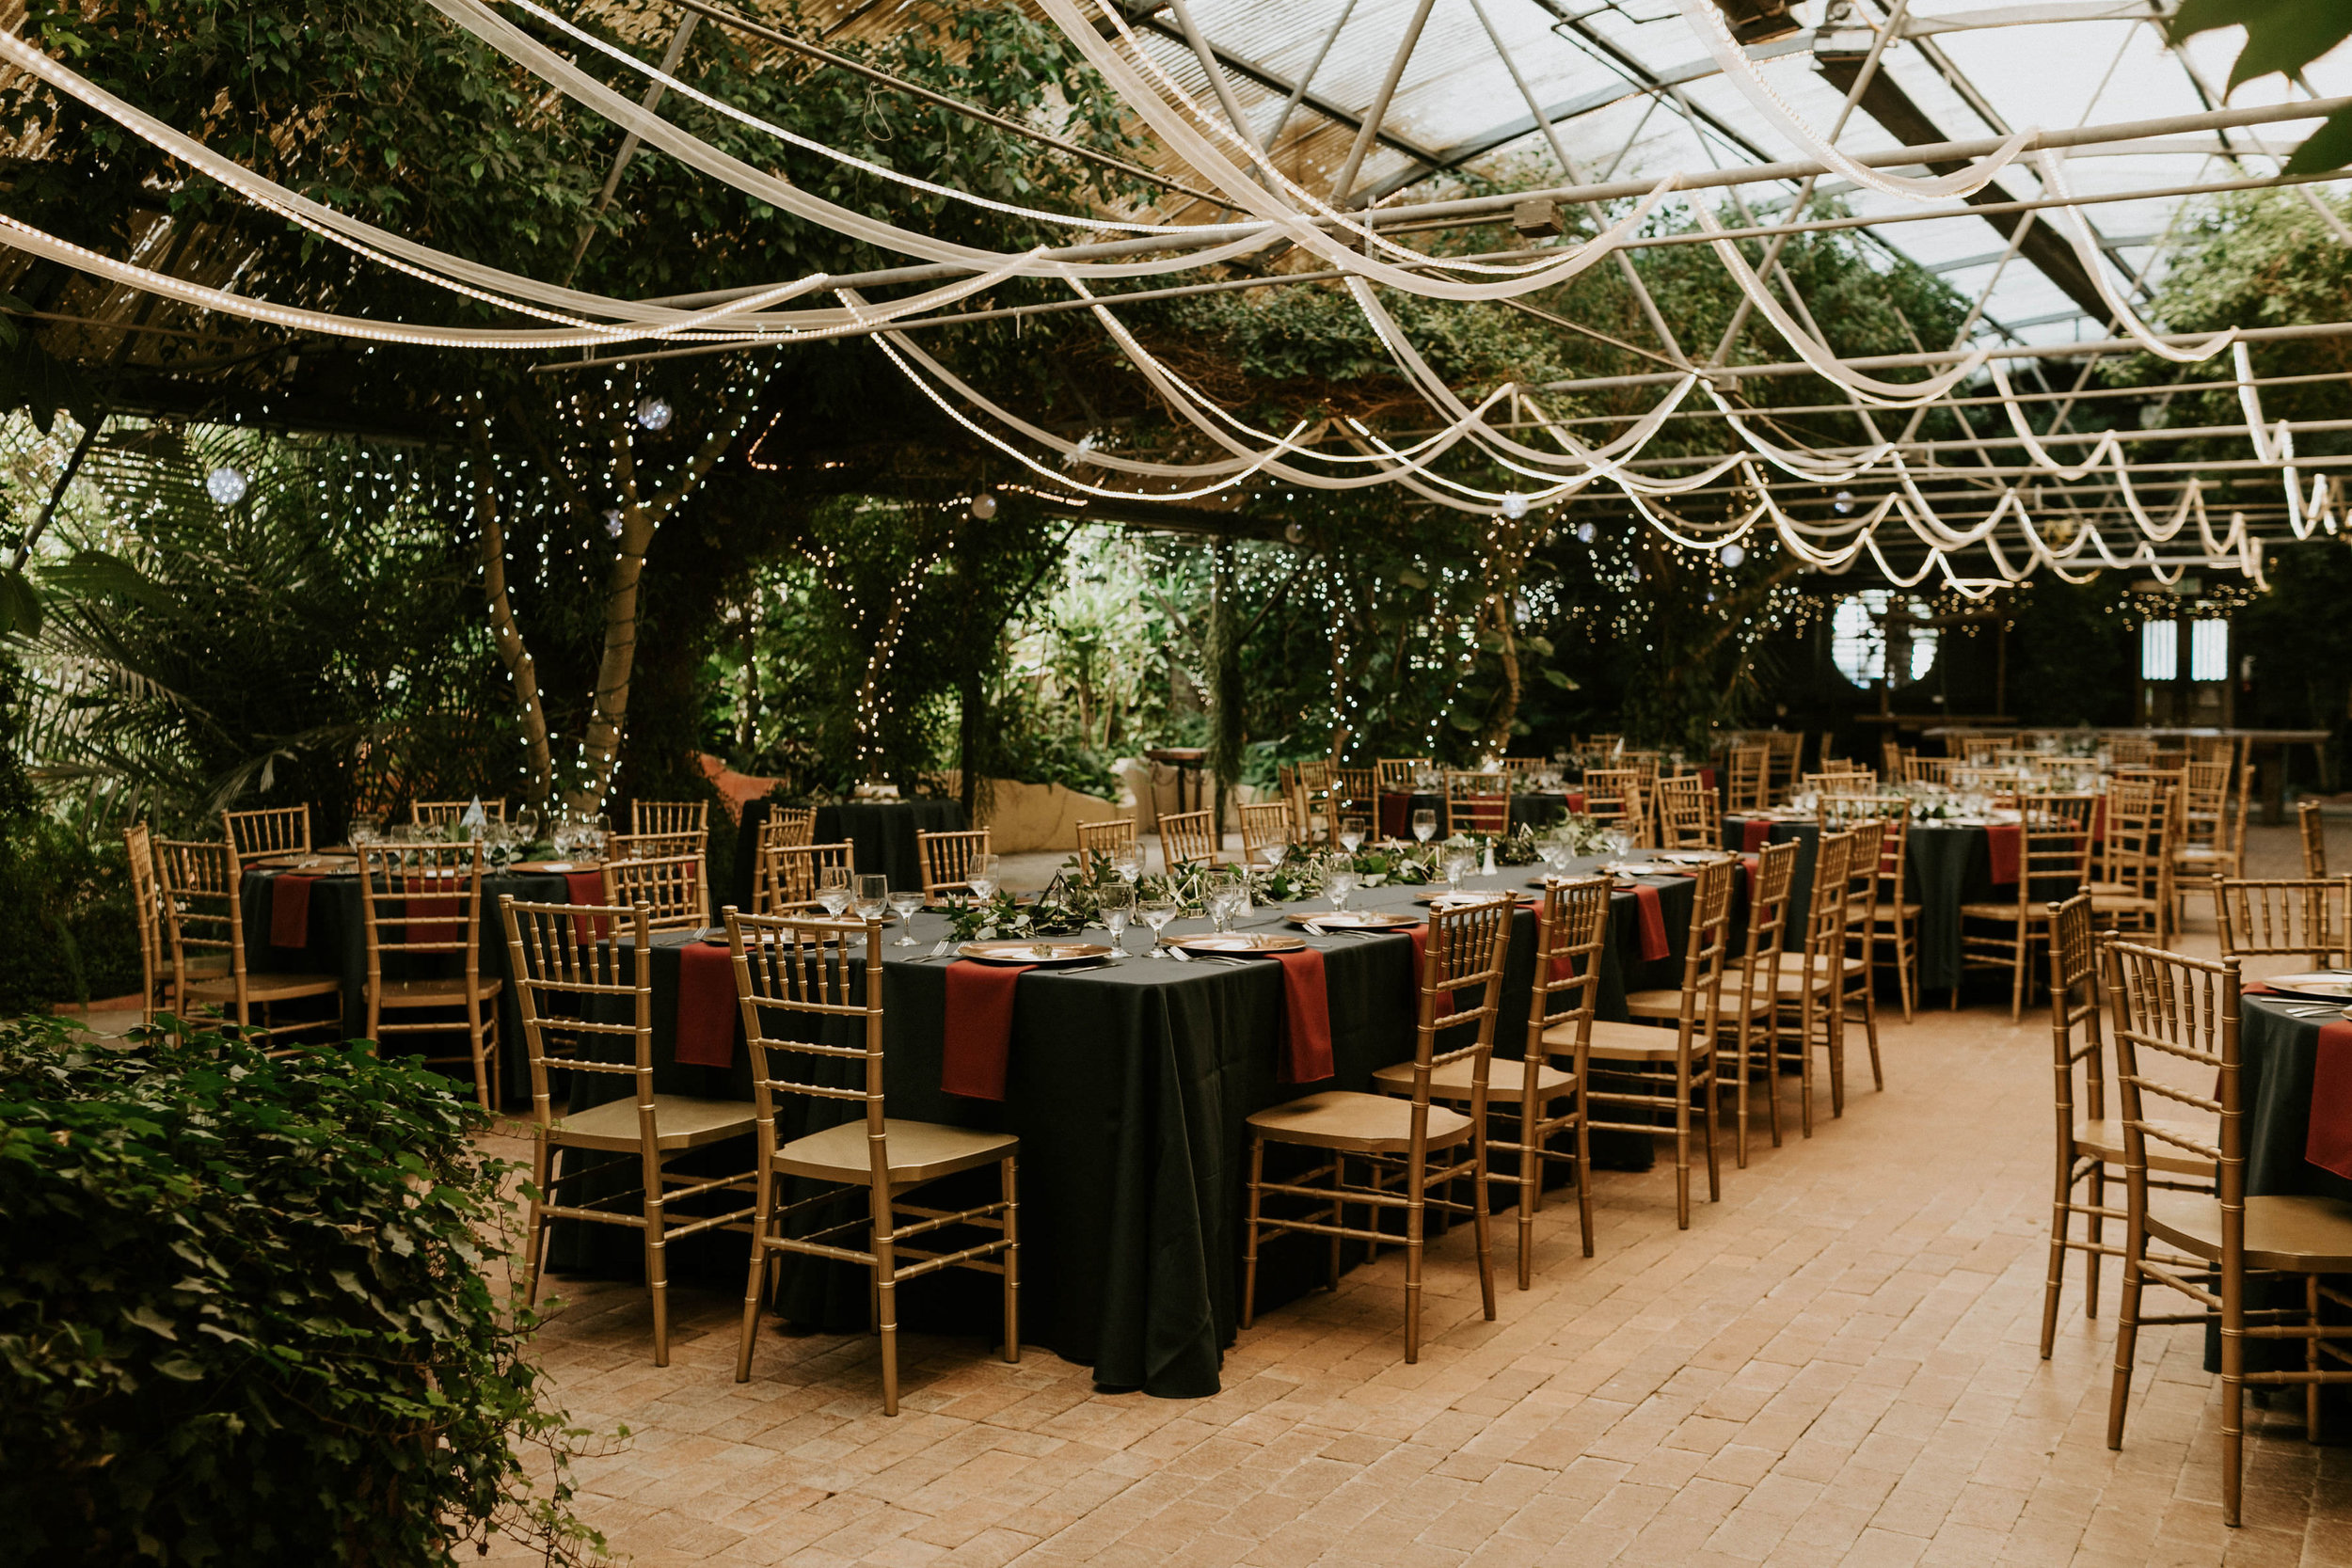 The wedding reception space at Boojum Space